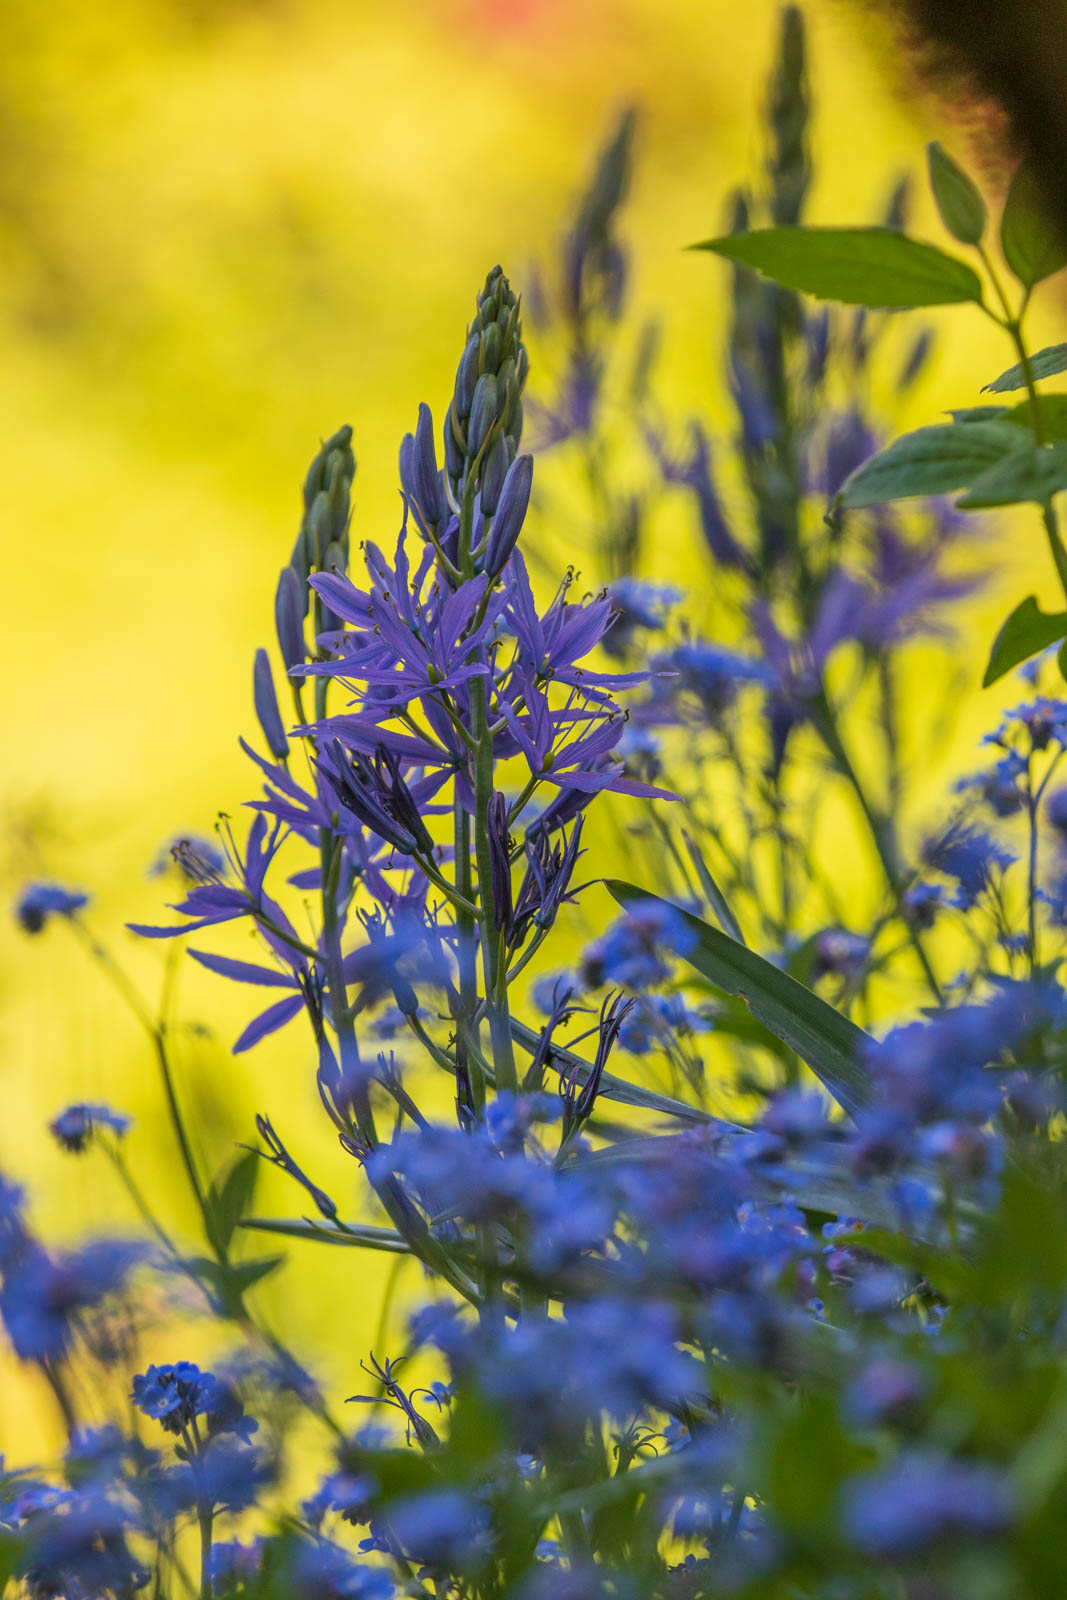 Photo: Camassia und Mysotis in trauter Zweisamkeit